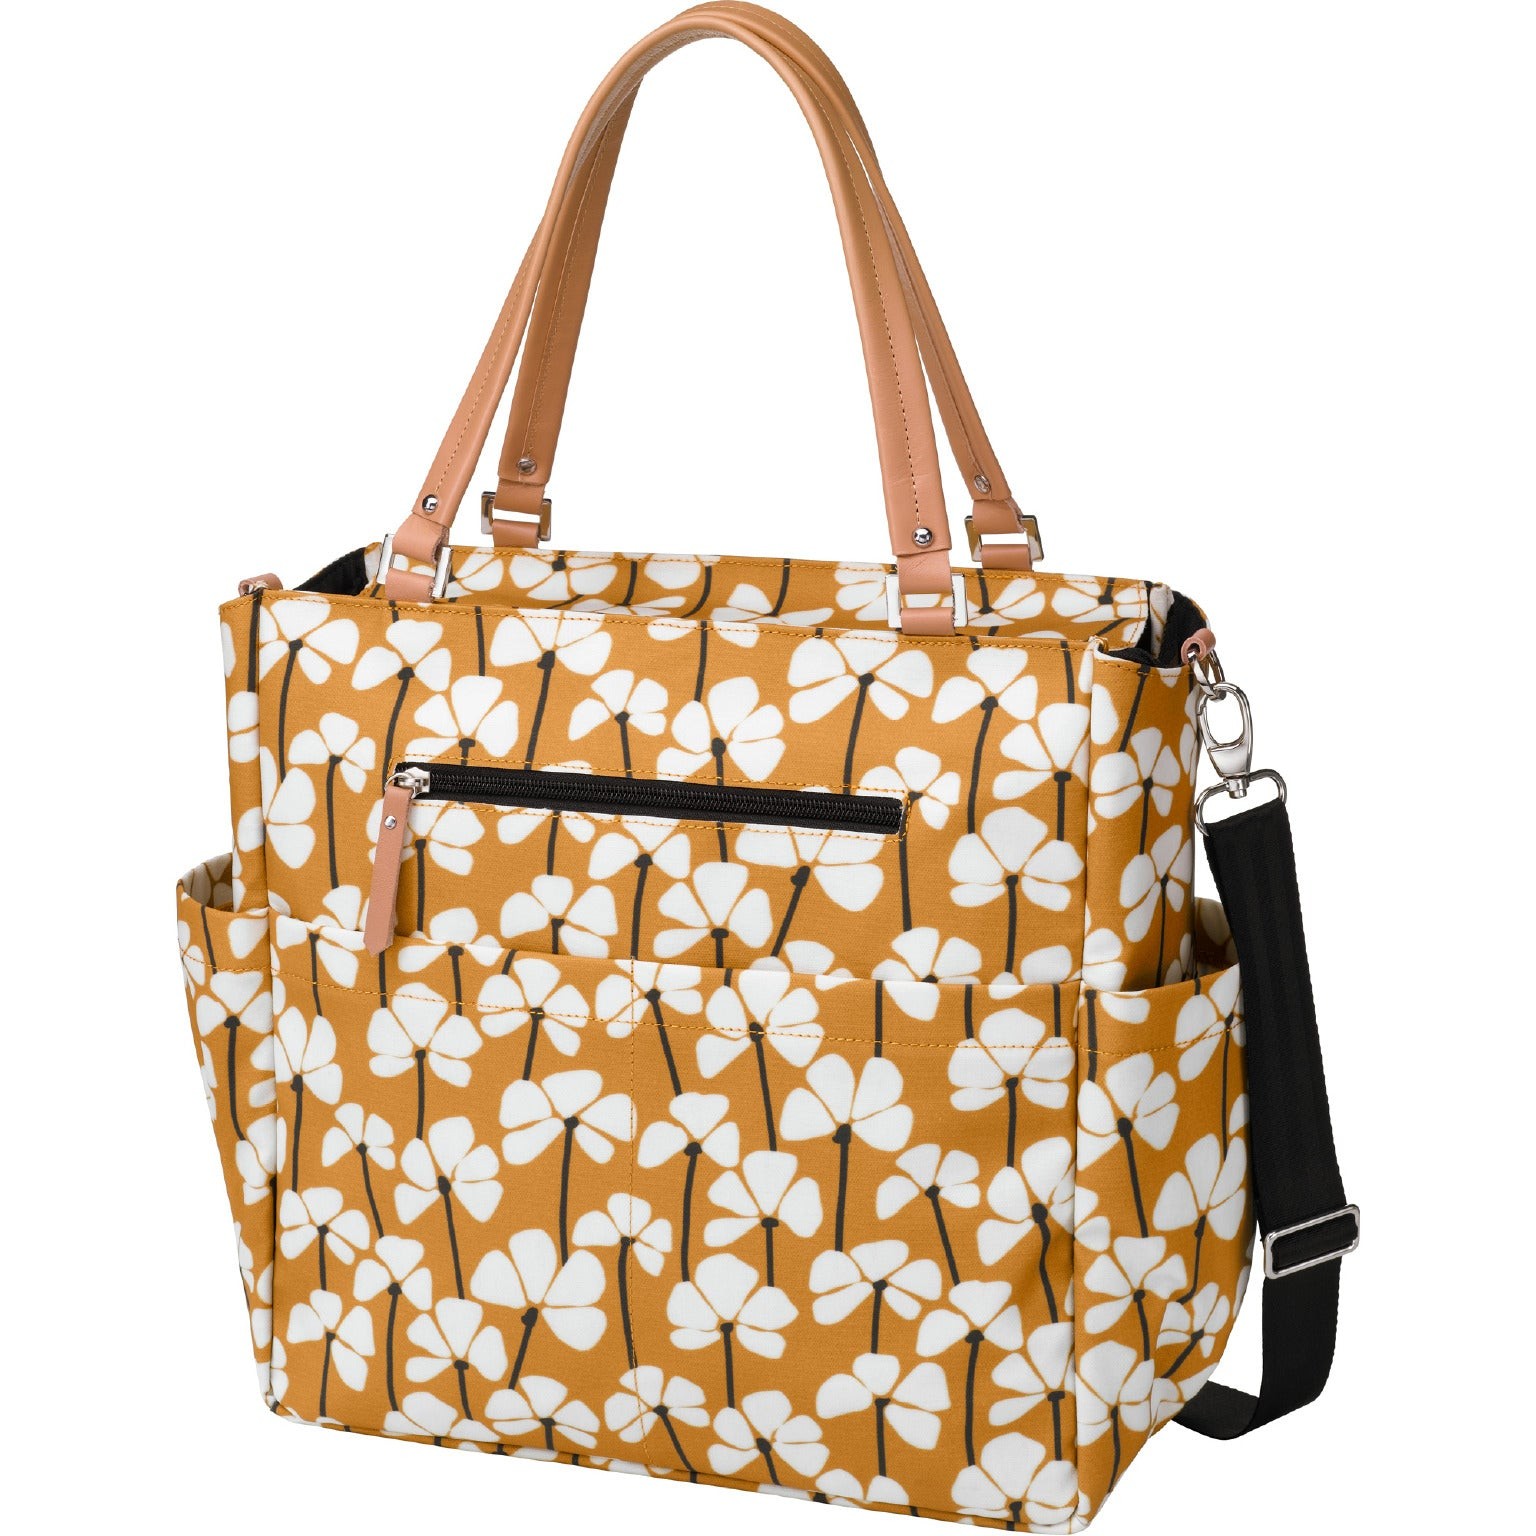 Petunia Pickle Bottom City Carryall - Meandering In Middleton